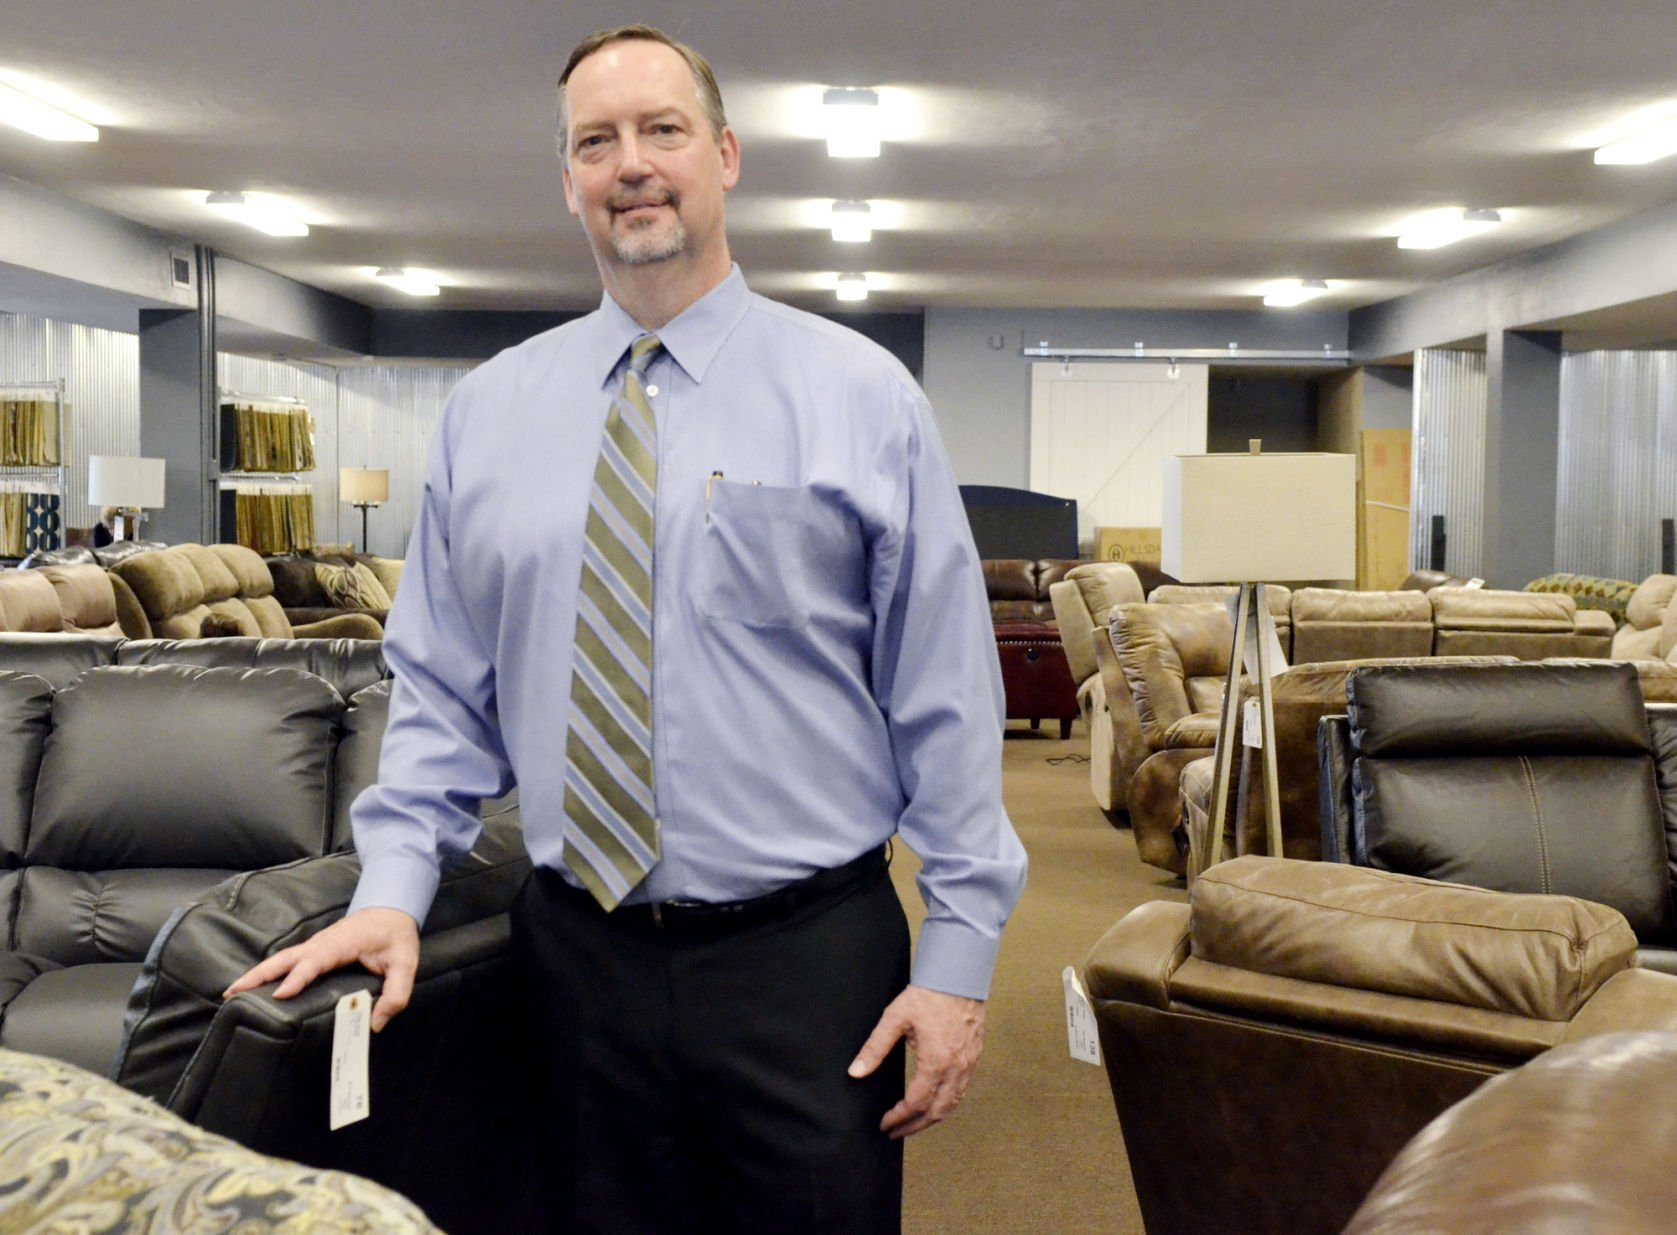 Elegant Owner Tim Deets Opened His New Downtown Furniture Store At 2422 13th St.  Last Week Following A Six Month Remodeling Project To The Nearly  25,000 Square Foot ...